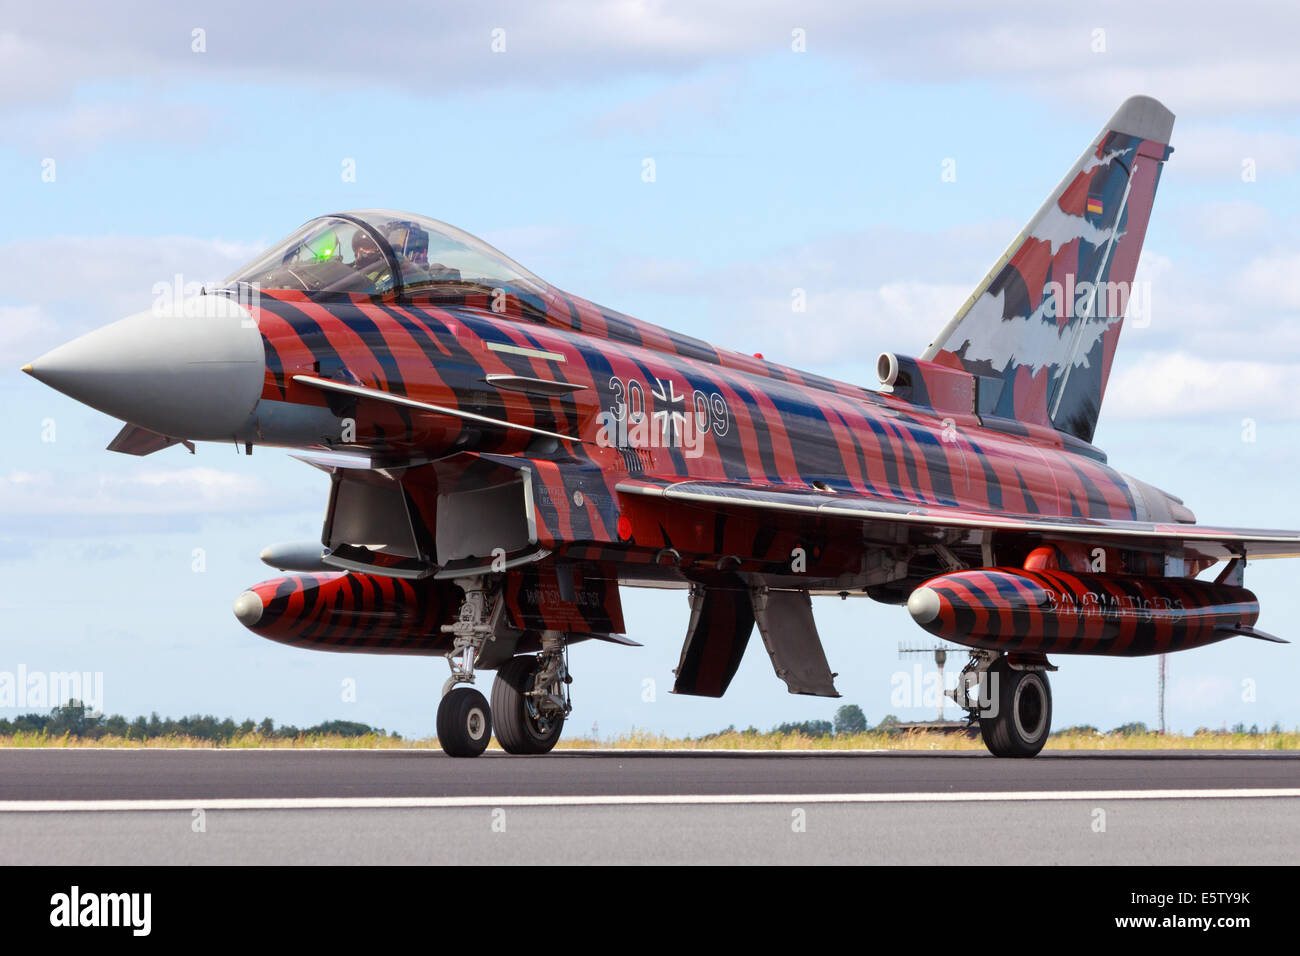 Special painted German Air Force Eurofighter at the NATO Tigermeet on June 23rd, 2014 in Schleswig Jagel airbase - Stock Image